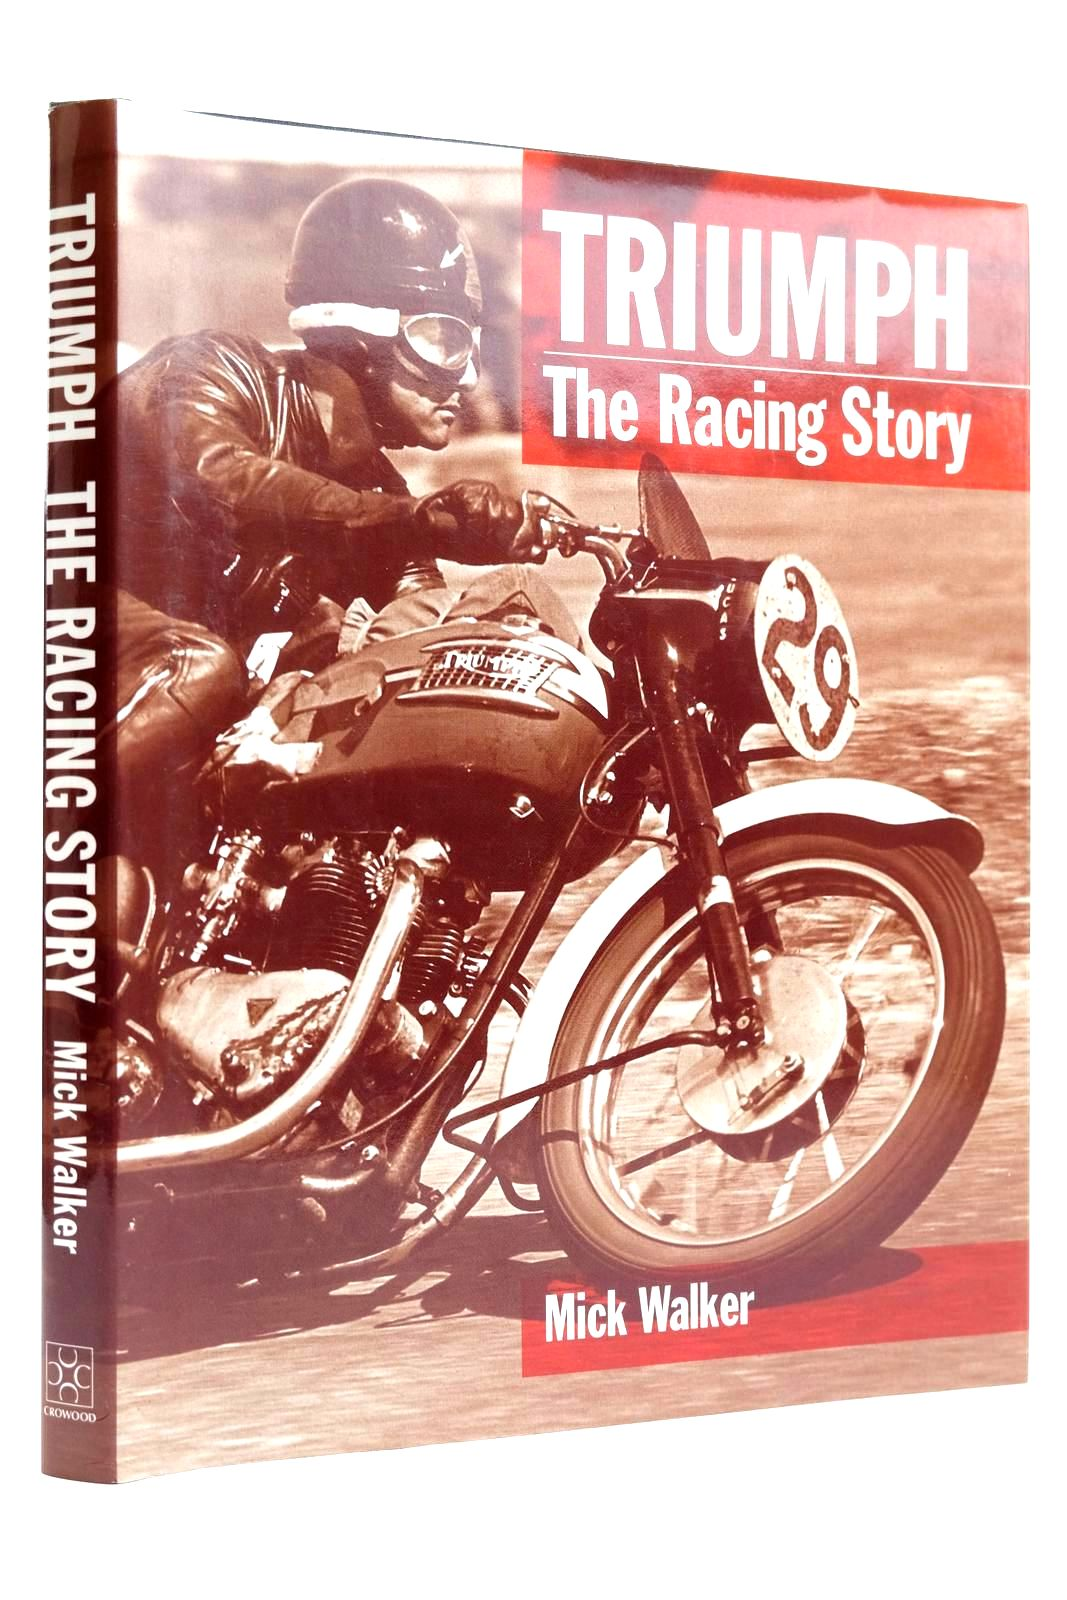 Photo of TRIUMPH THE RACING STORY written by Walker, Mick published by The Crowood Press (STOCK CODE: 2131987)  for sale by Stella & Rose's Books